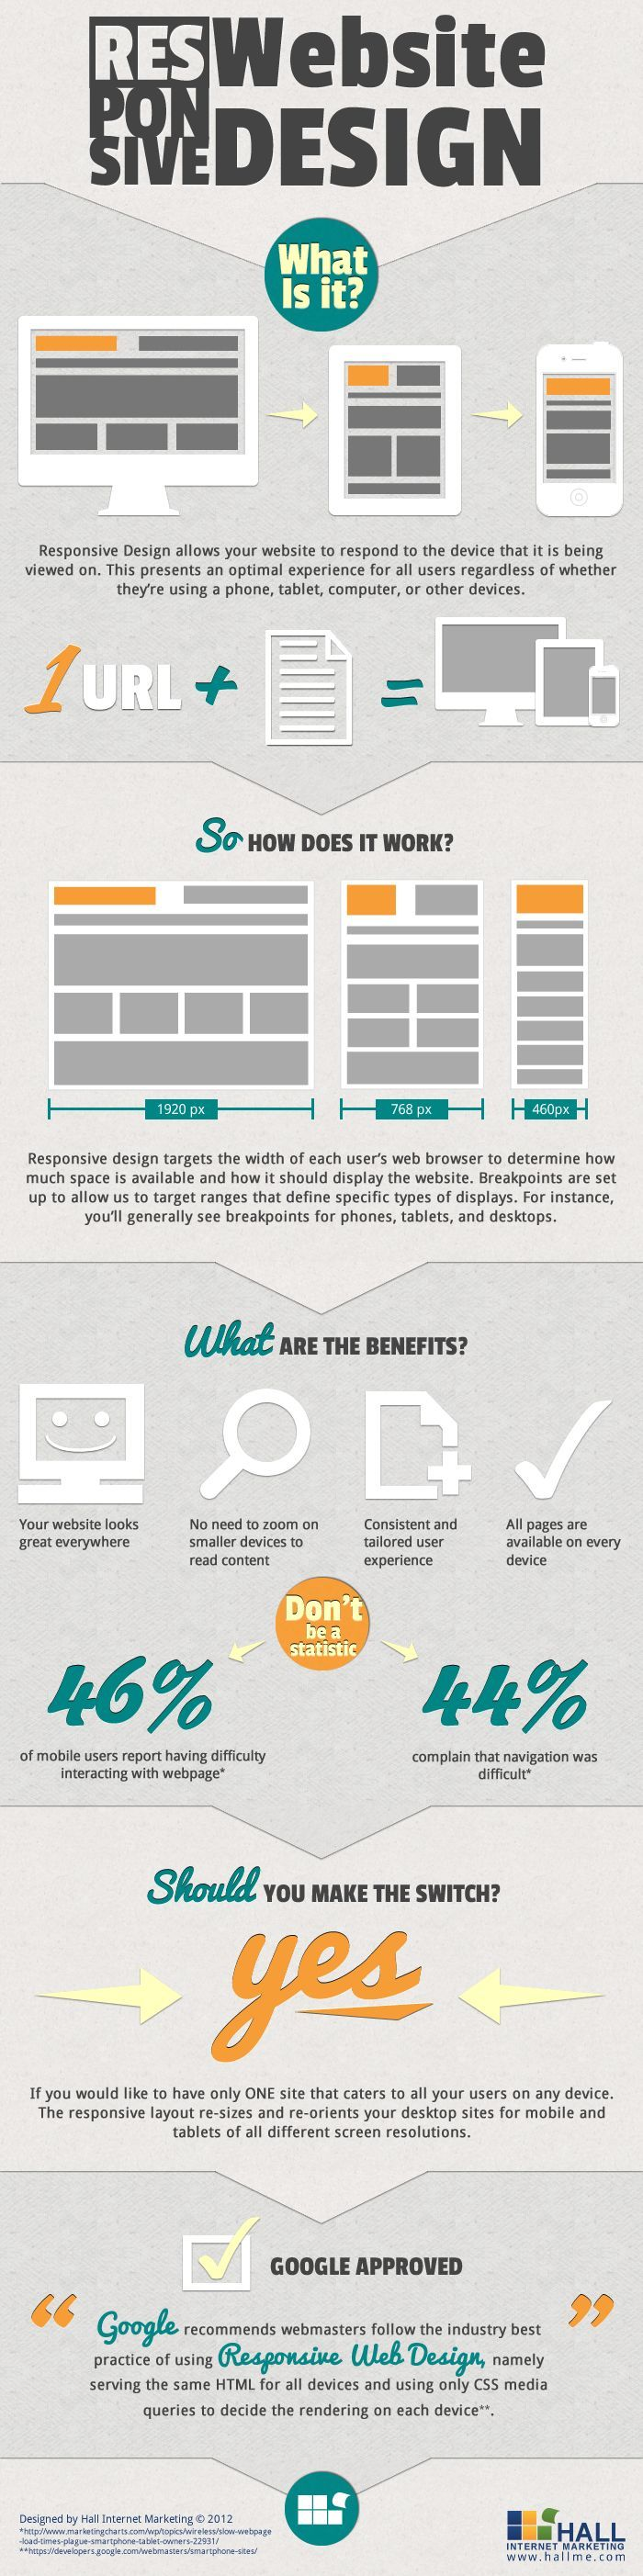 responsive-design-what-is-it